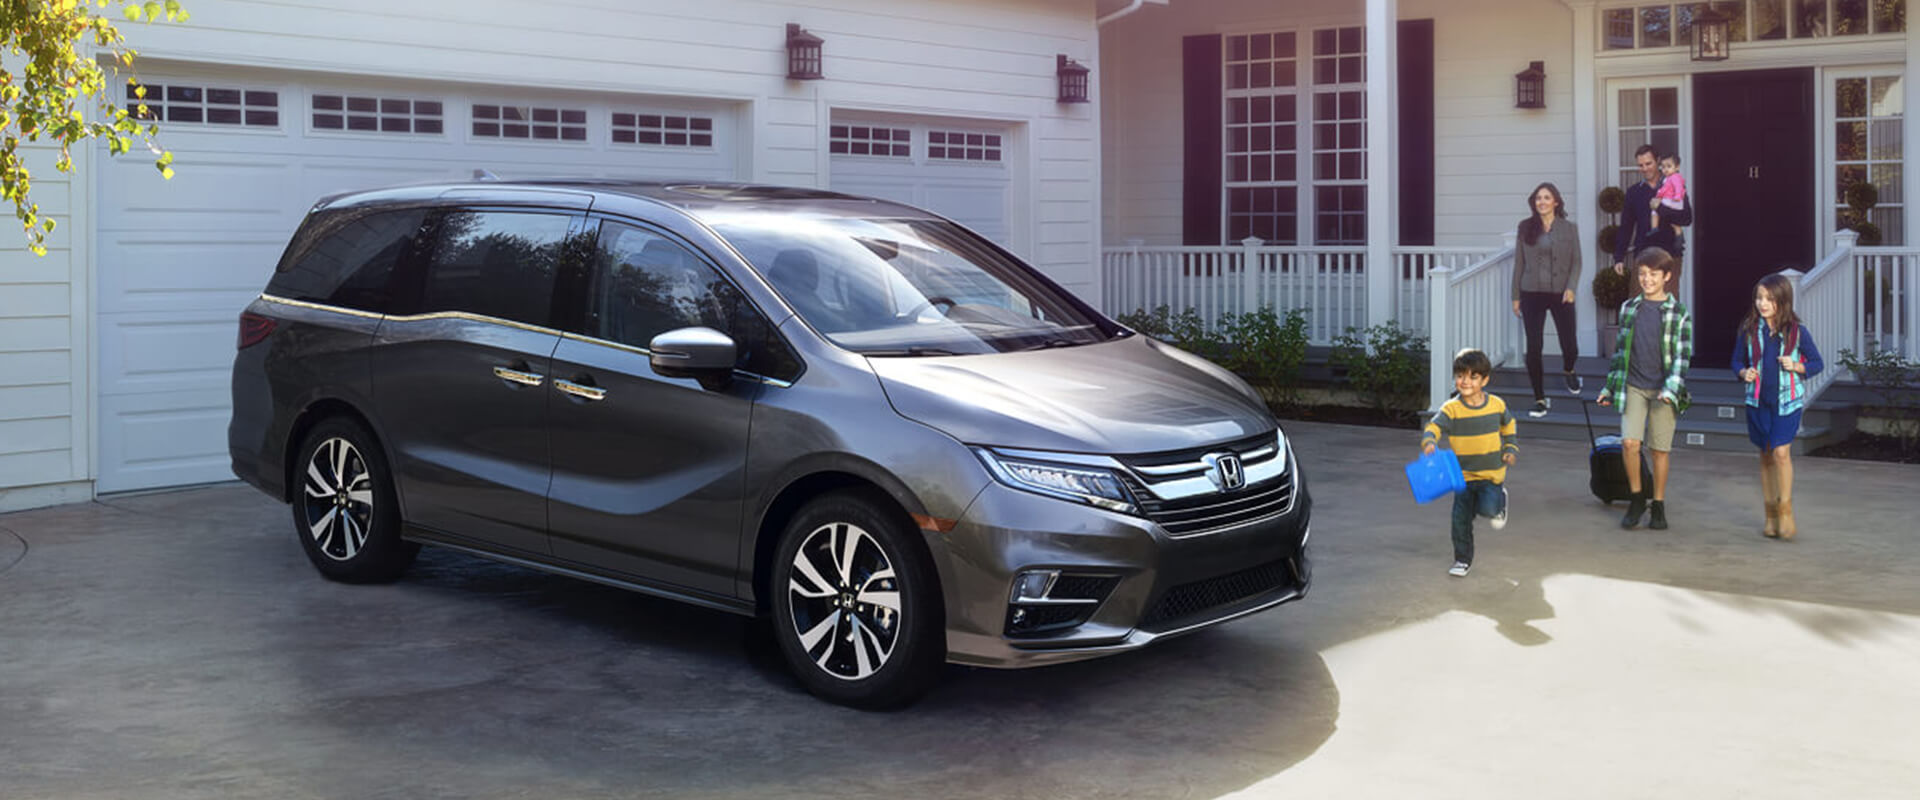 2019 honda odyssey central alabama honda dealers for Tameron honda gadsden al